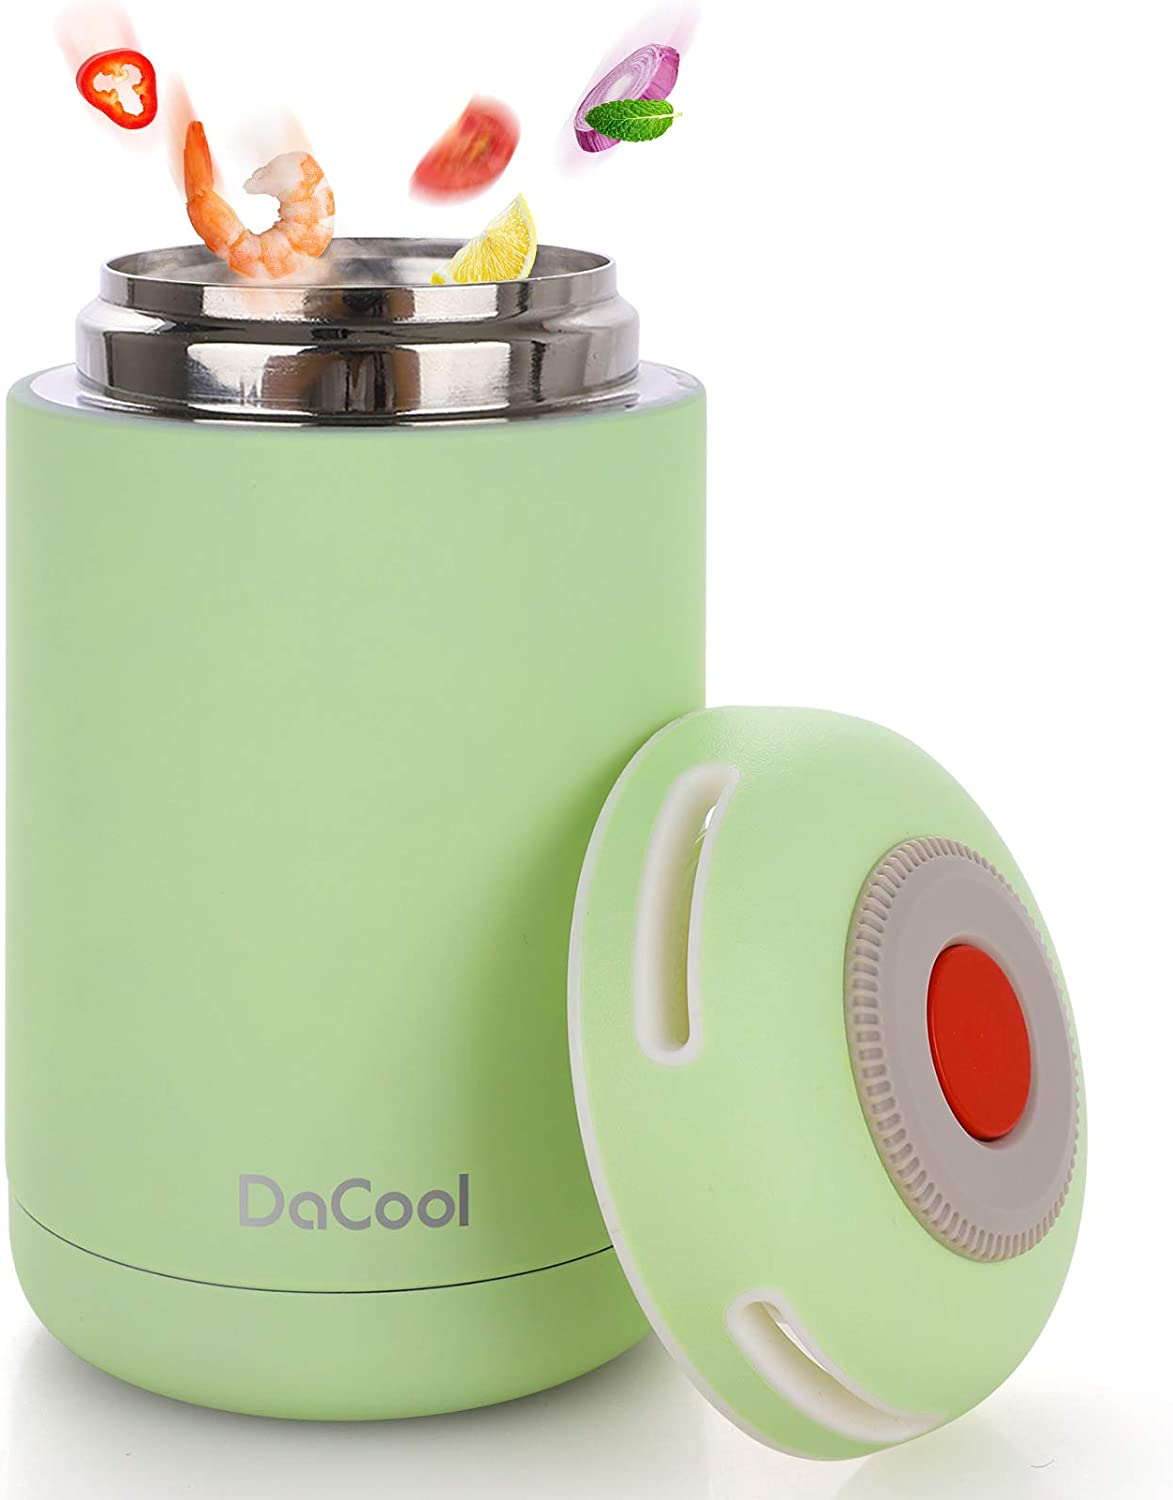 DaCool Hot Food Thermoses Insulated Lunch Containers Stainless Steel Hot Soup Food Jar 16 oz for Kids Adult School Lunch Containers Office Lunch Boxes Leak Proof for Picnic Outdoors BPA Free, Green